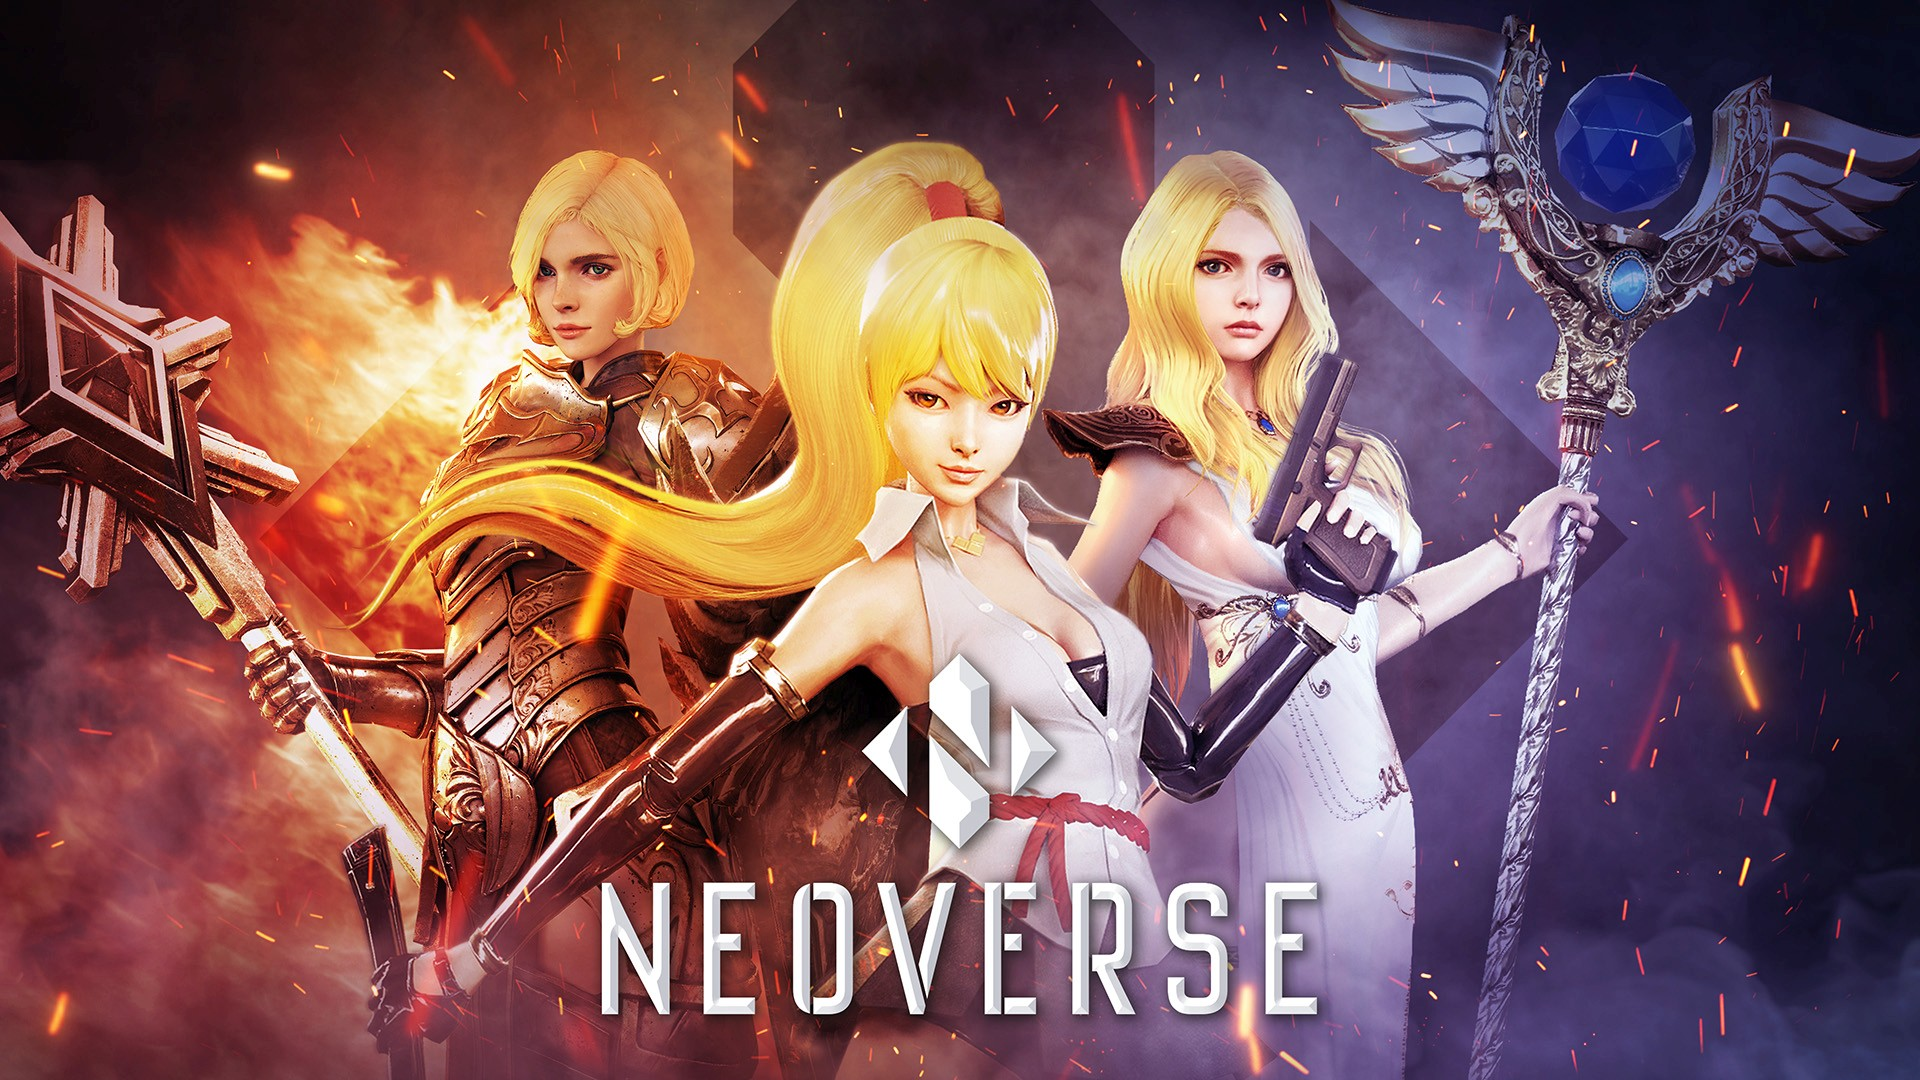 Neoverse is Now Available with Xbox Game Pass